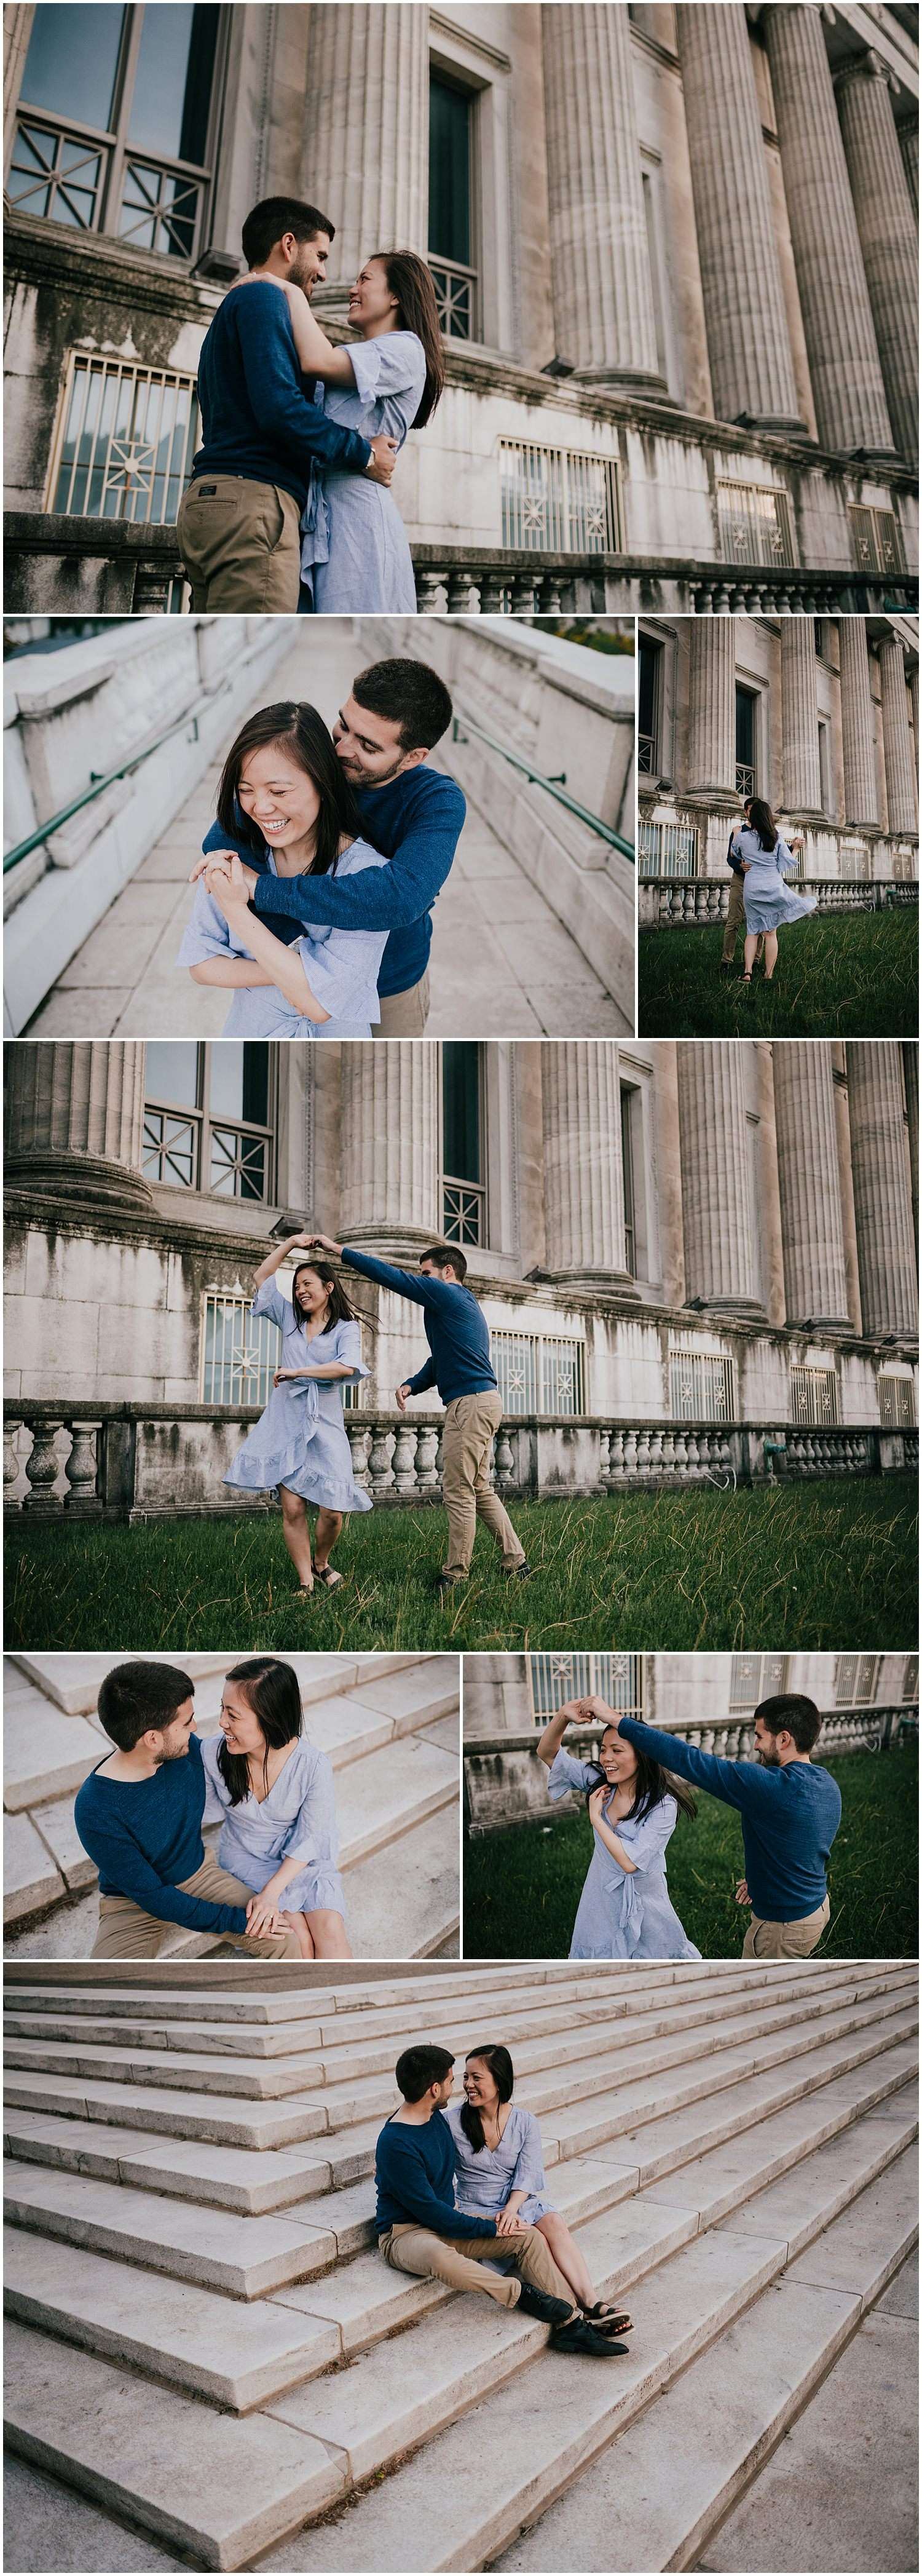 field museum, museum campus, chicago, skyline, city, lake michigan, sunset, engagement, couple, couples, photographer, photography, iron and honey, lifestyle, documentary, candid, unposed, best chicagophotographer, best chicagophotographers, best chicago engagement photographer, best chicagowedding photographer